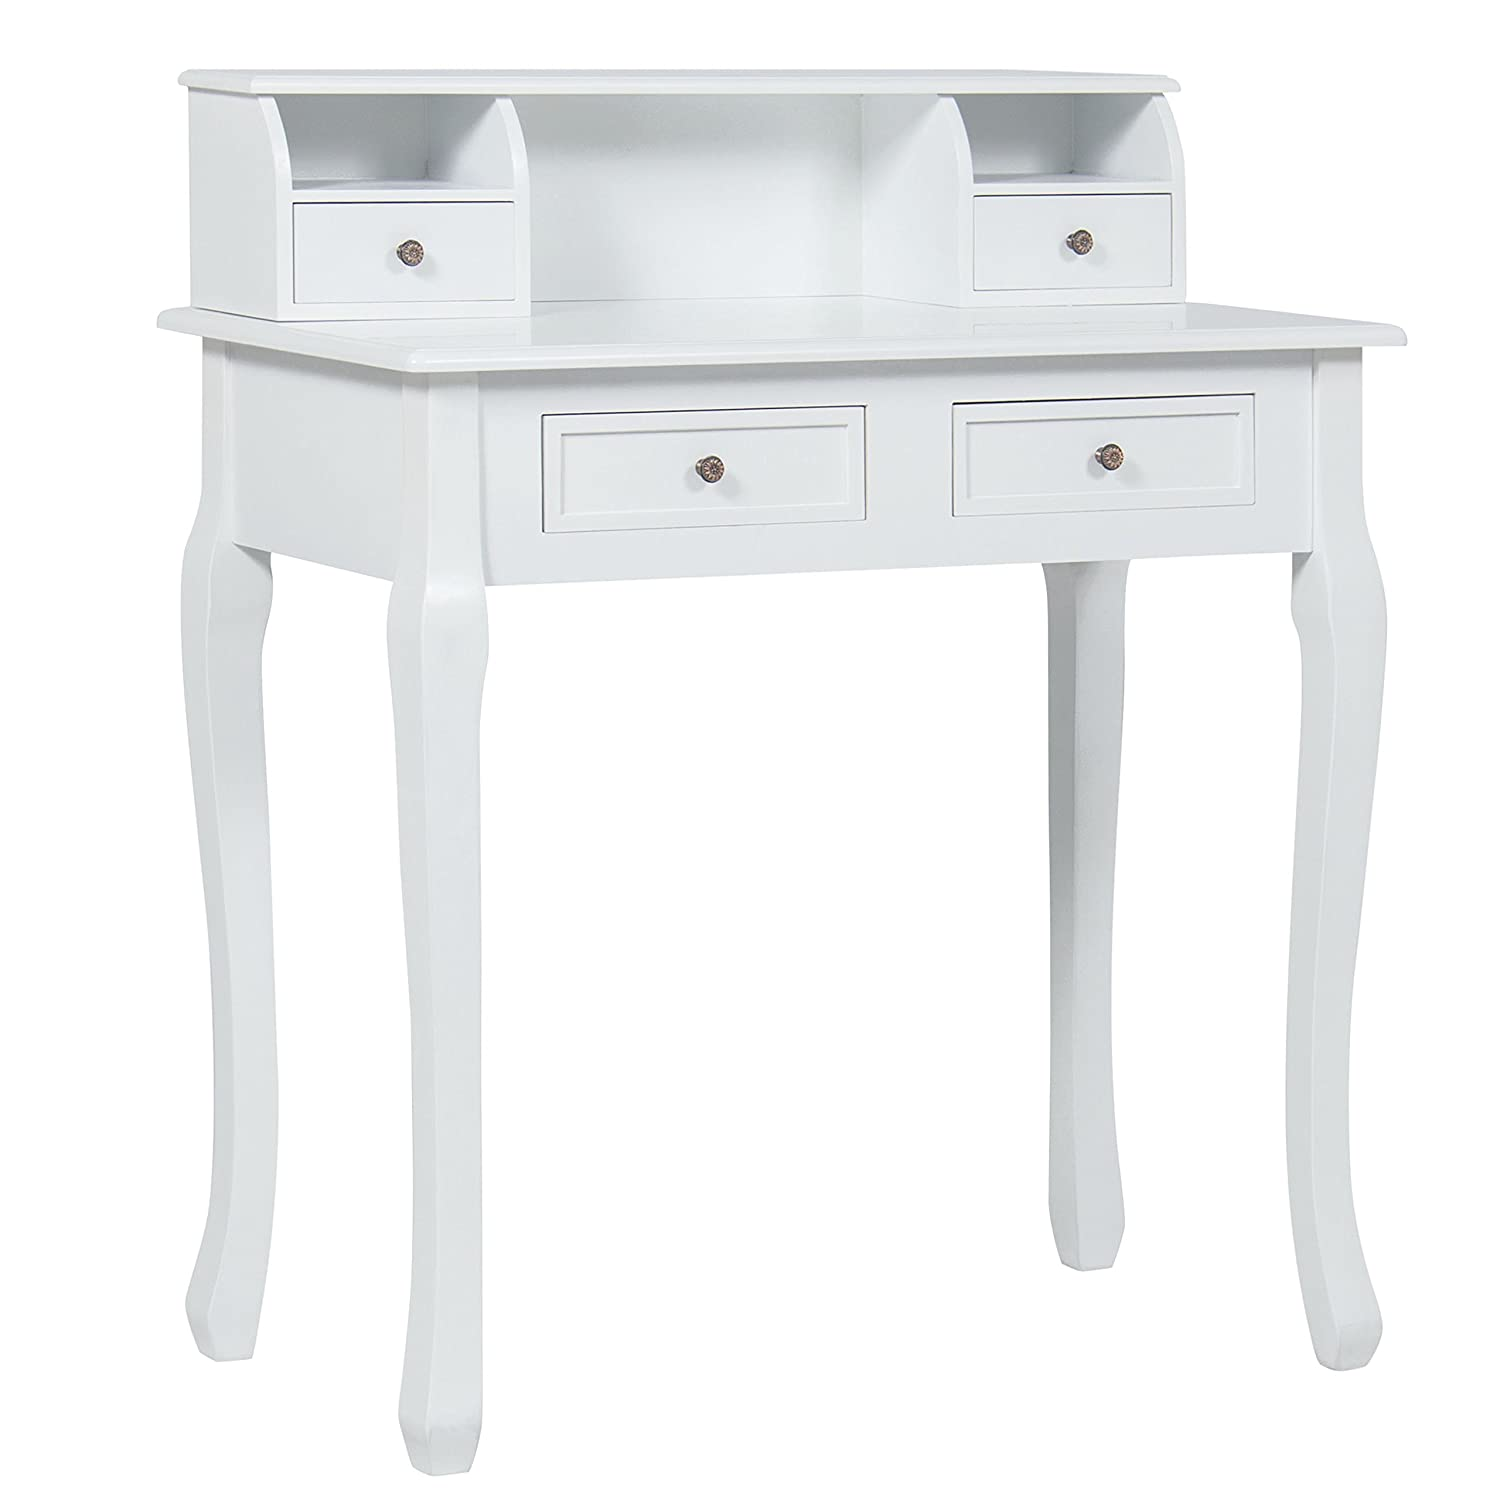 work desks home office. Amazon.com: Best Choice Products Home Office Furniture Writing Desk Work Station Computer Laptop Table, White: Kitchen \u0026 Dining Desks